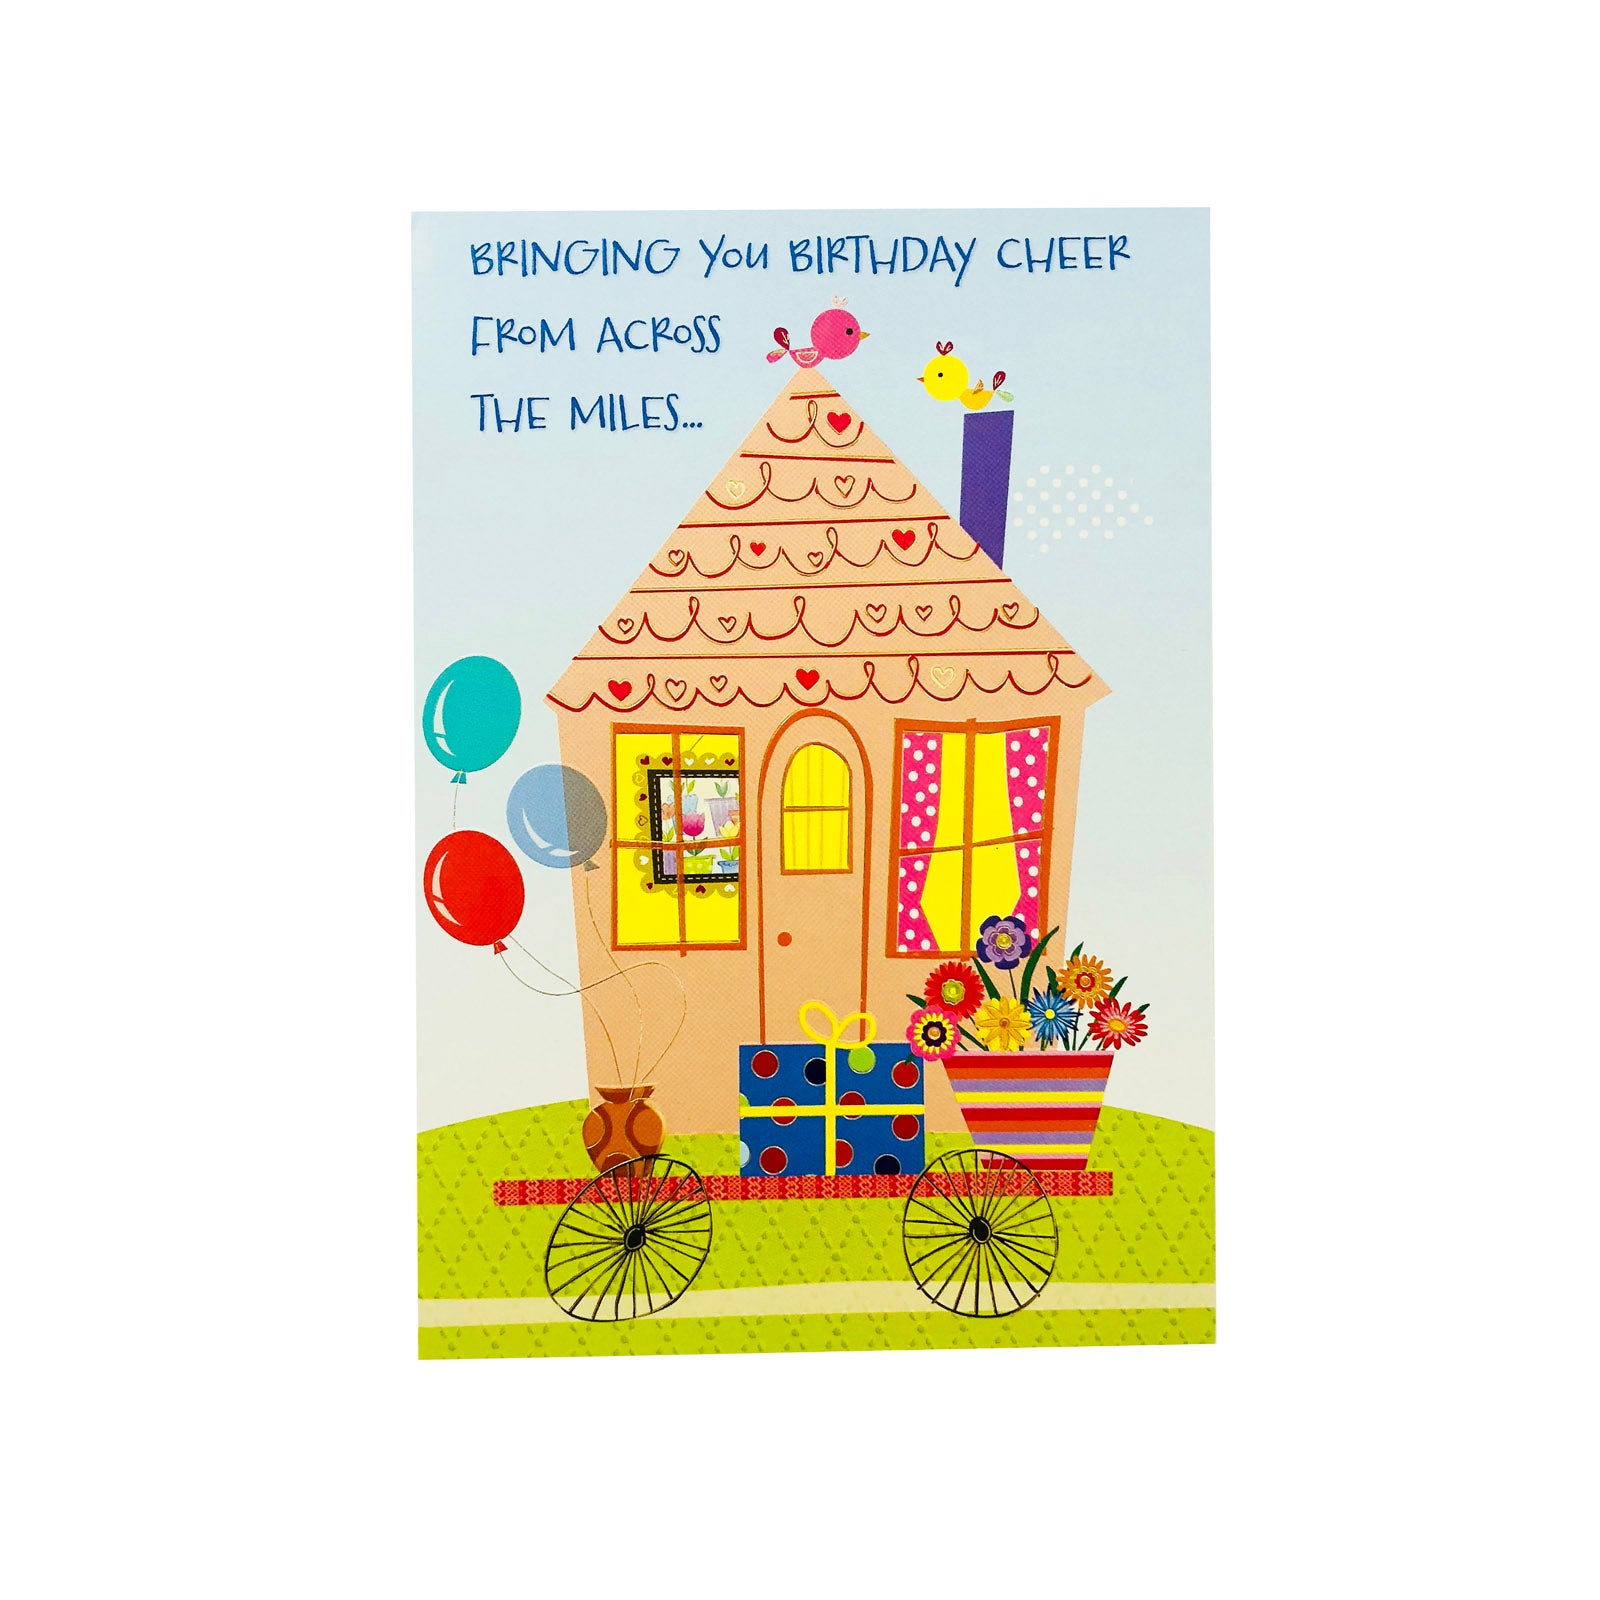 Designer Greetings Birthday Card - Bringing You Birthday Cheer - House